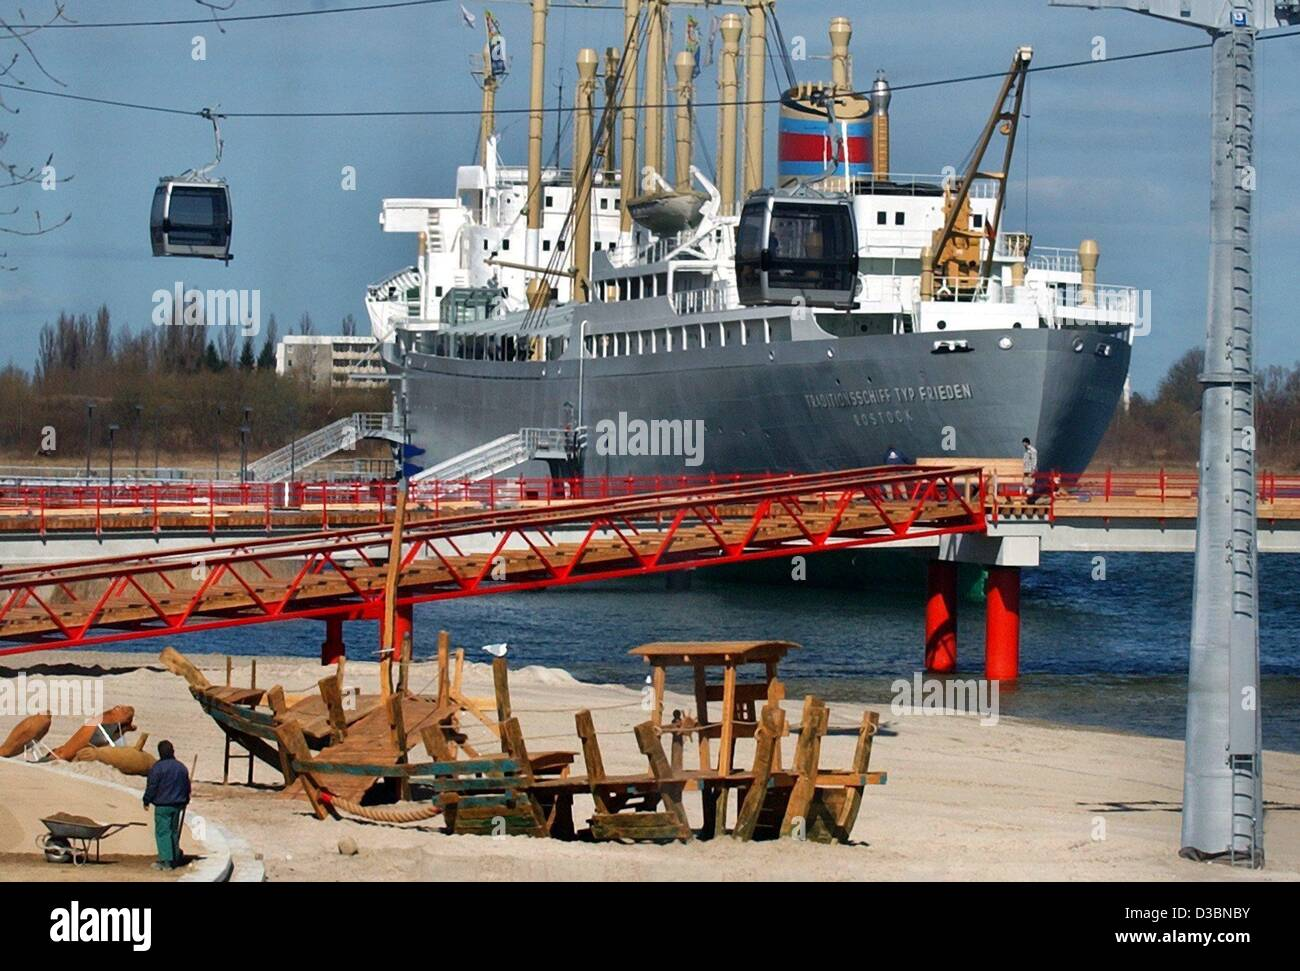 (dpa) - A restored historic ship will be the gastronomic centre of the international garden show IGA (Internationale - Stock Image